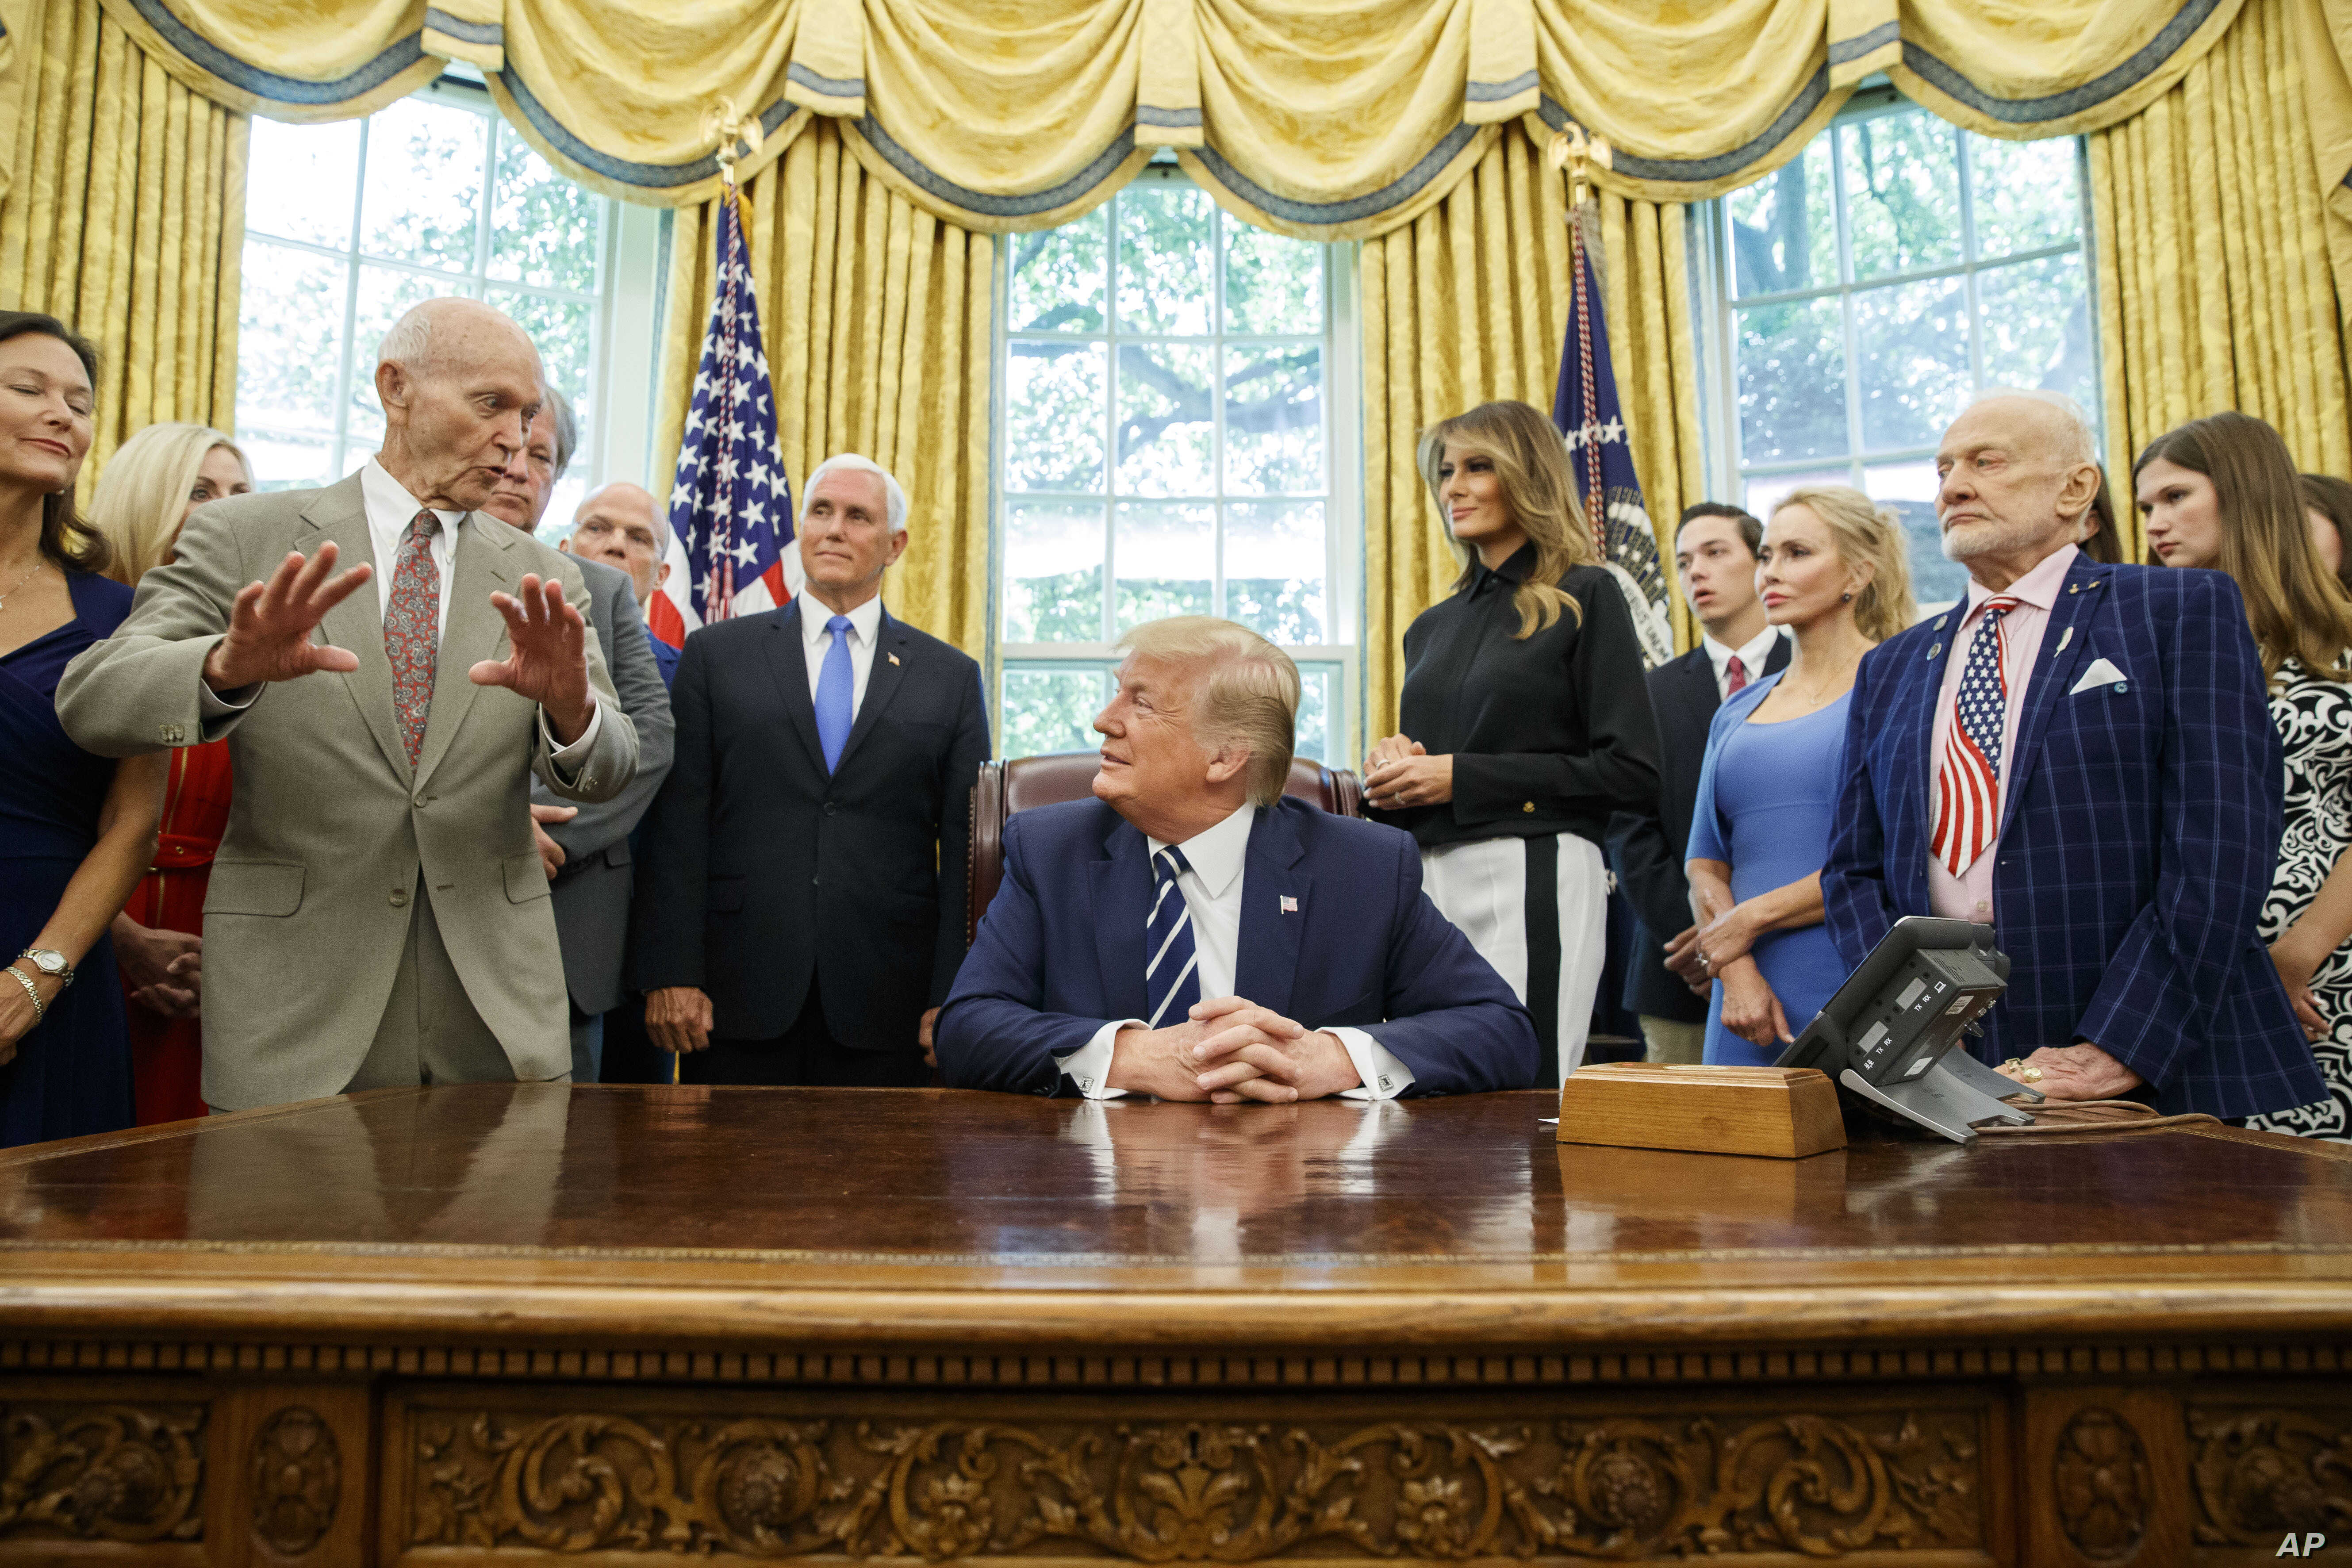 President Donald Trump, accompanied by Apollo 11 astronauts Michael Collins, left, and Buzz Aldrin, with Vice President Mike Pence and first lady Melania Trump, listens during photo opportunity commemorating 50th anniversary of Apollo 11 moon landing